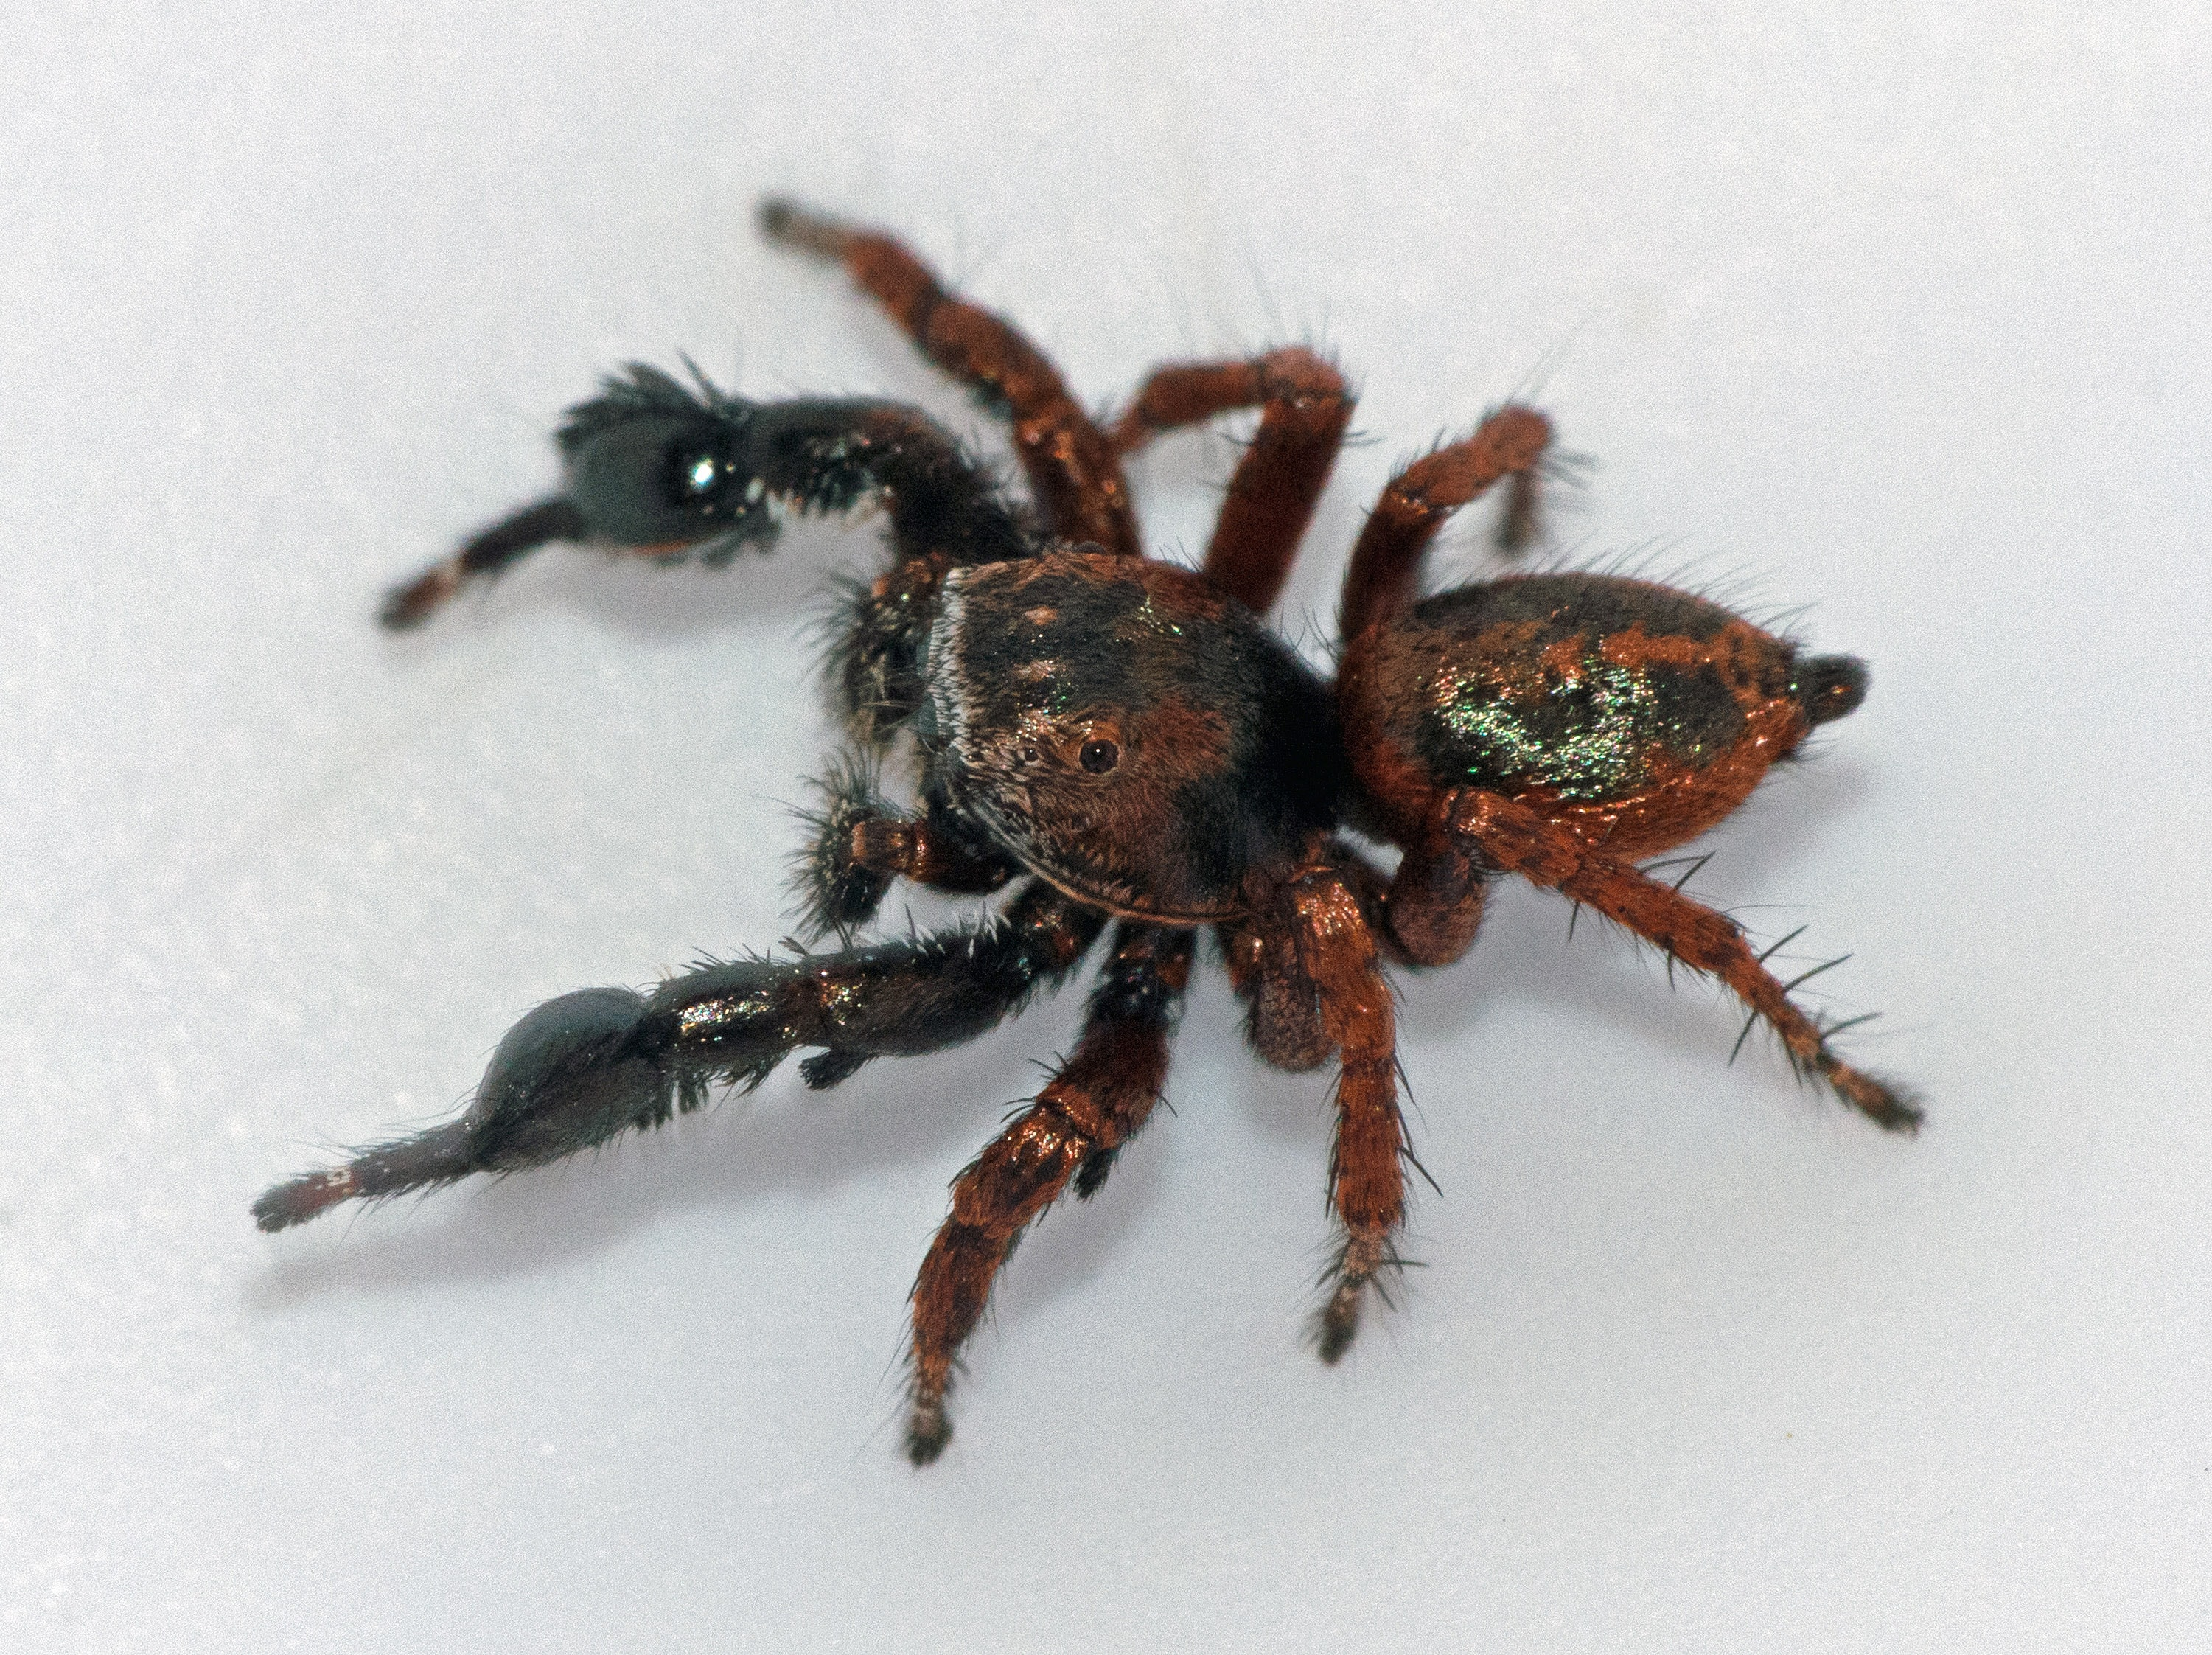 Picture of Habronattus oregonensis - Male - Dorsal